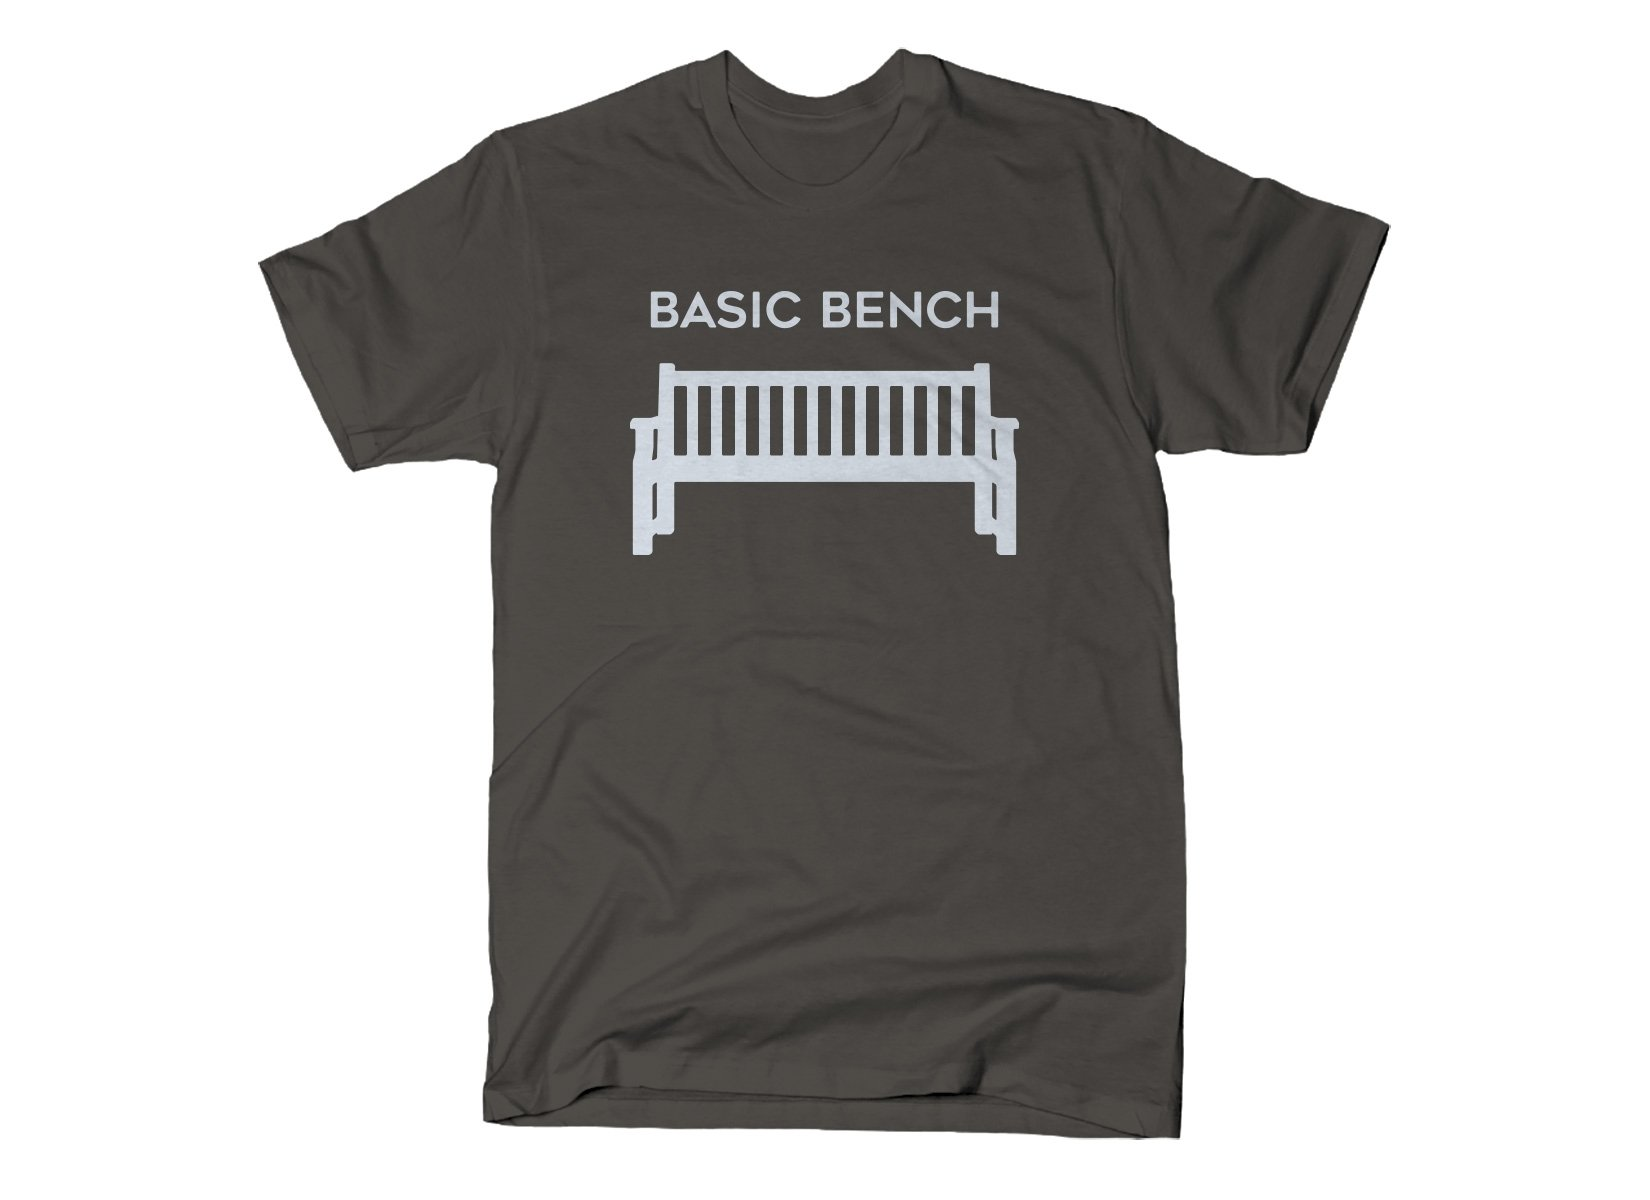 Basic Bench on Mens T-Shirt